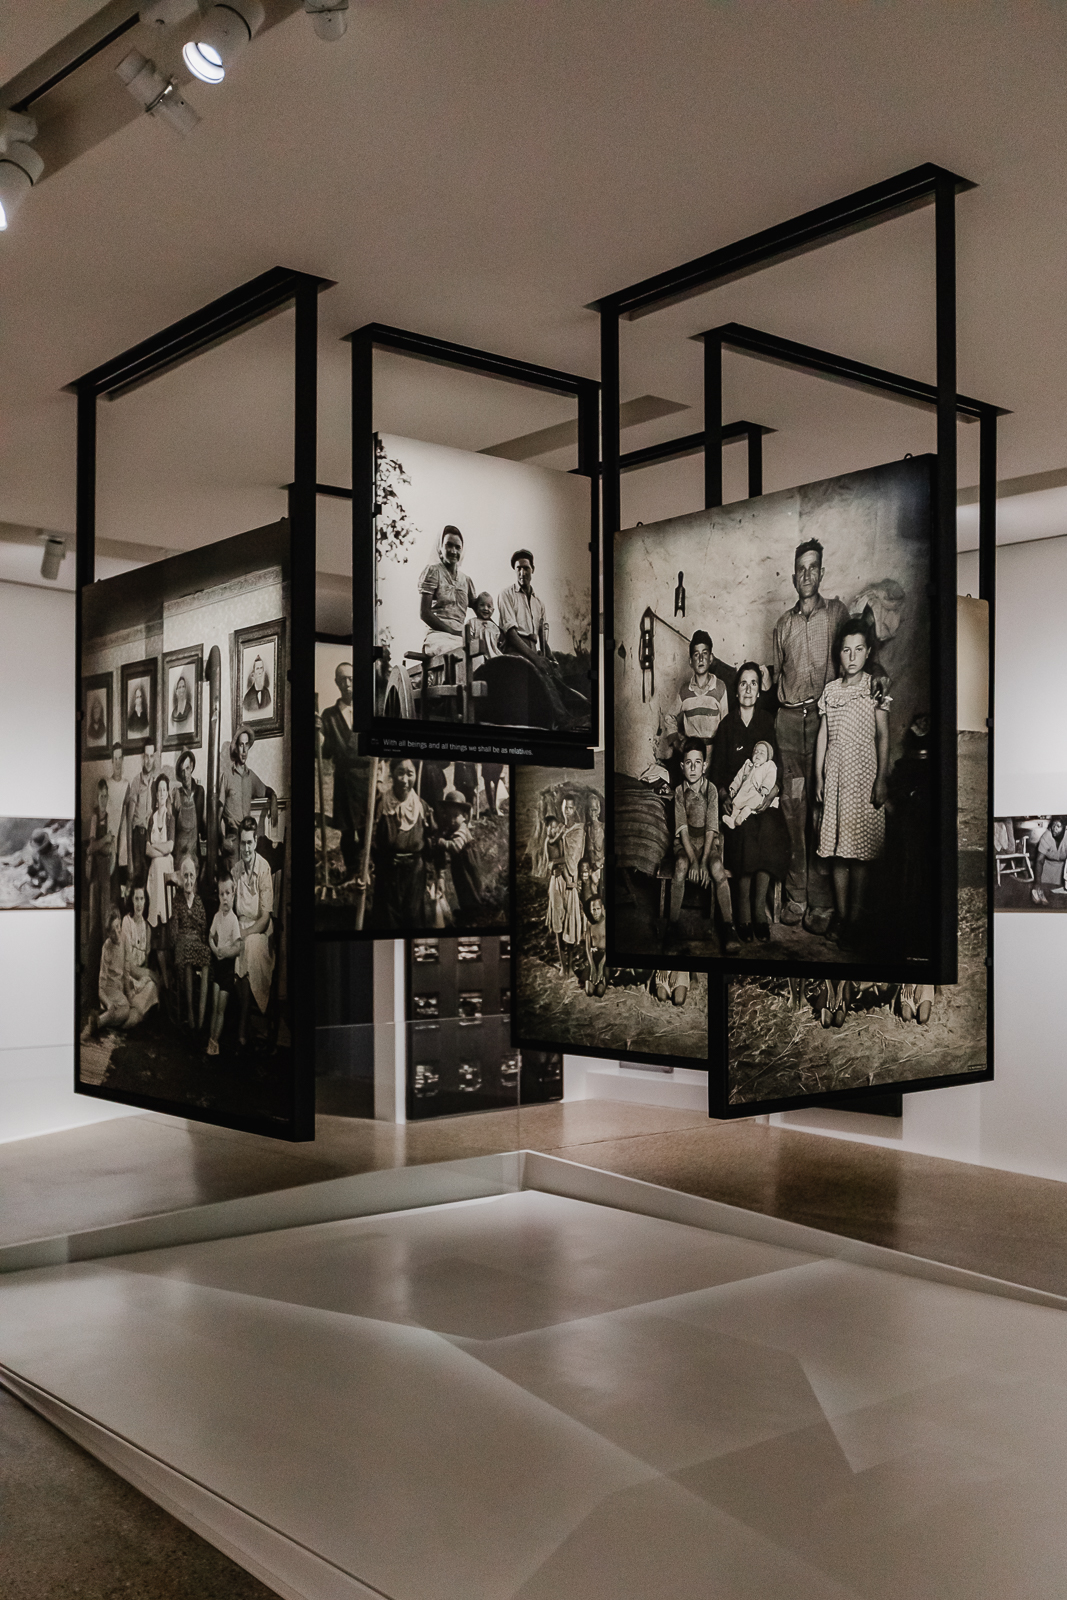 Black and white photos at family of man exposition